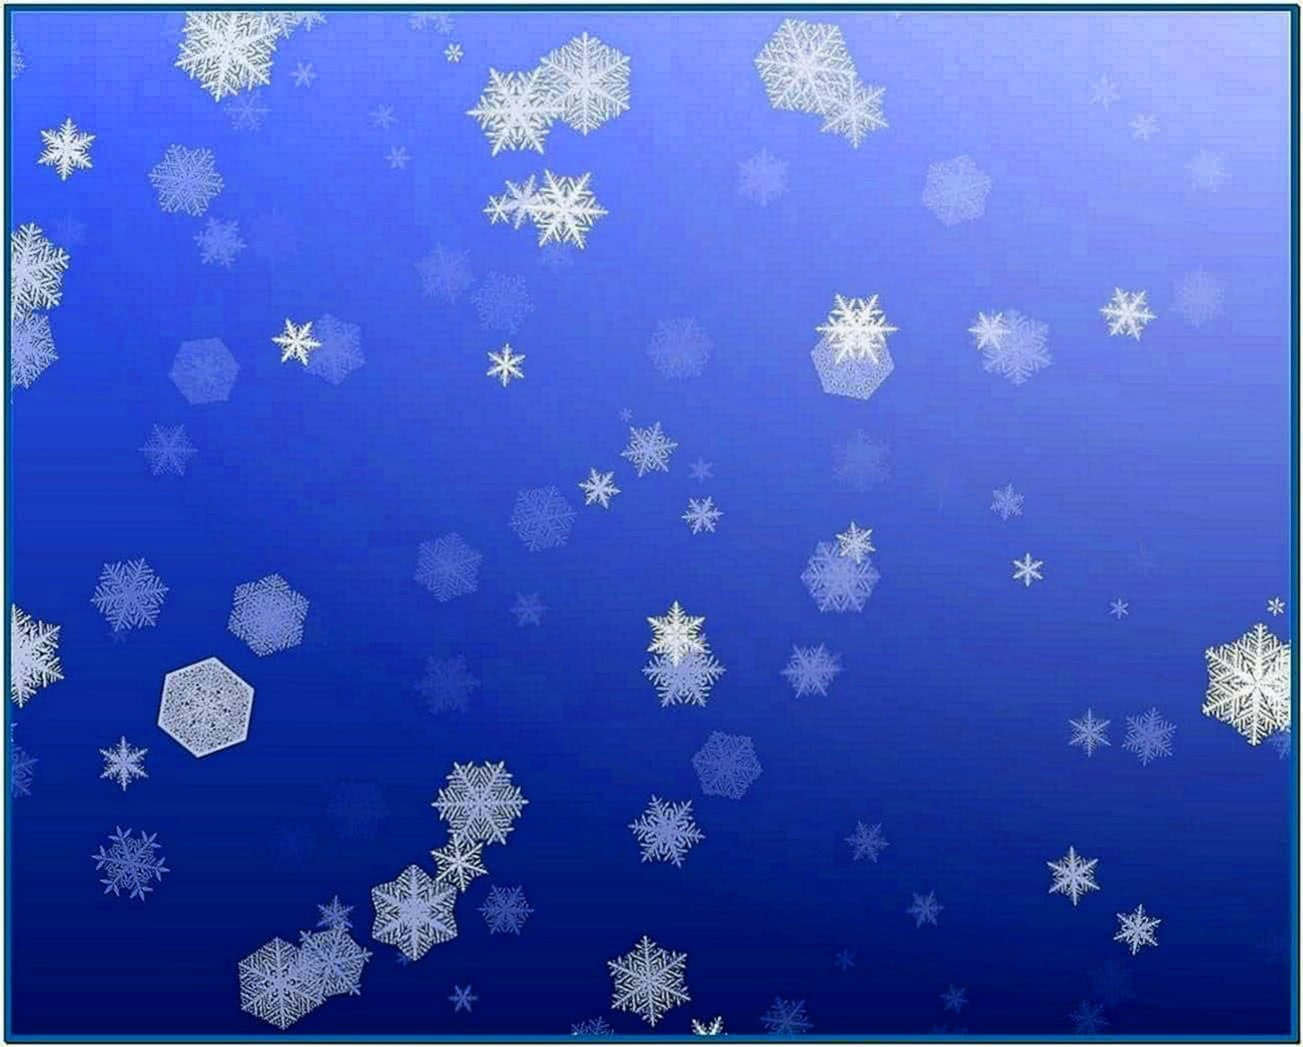 Screensaver Snow Fall